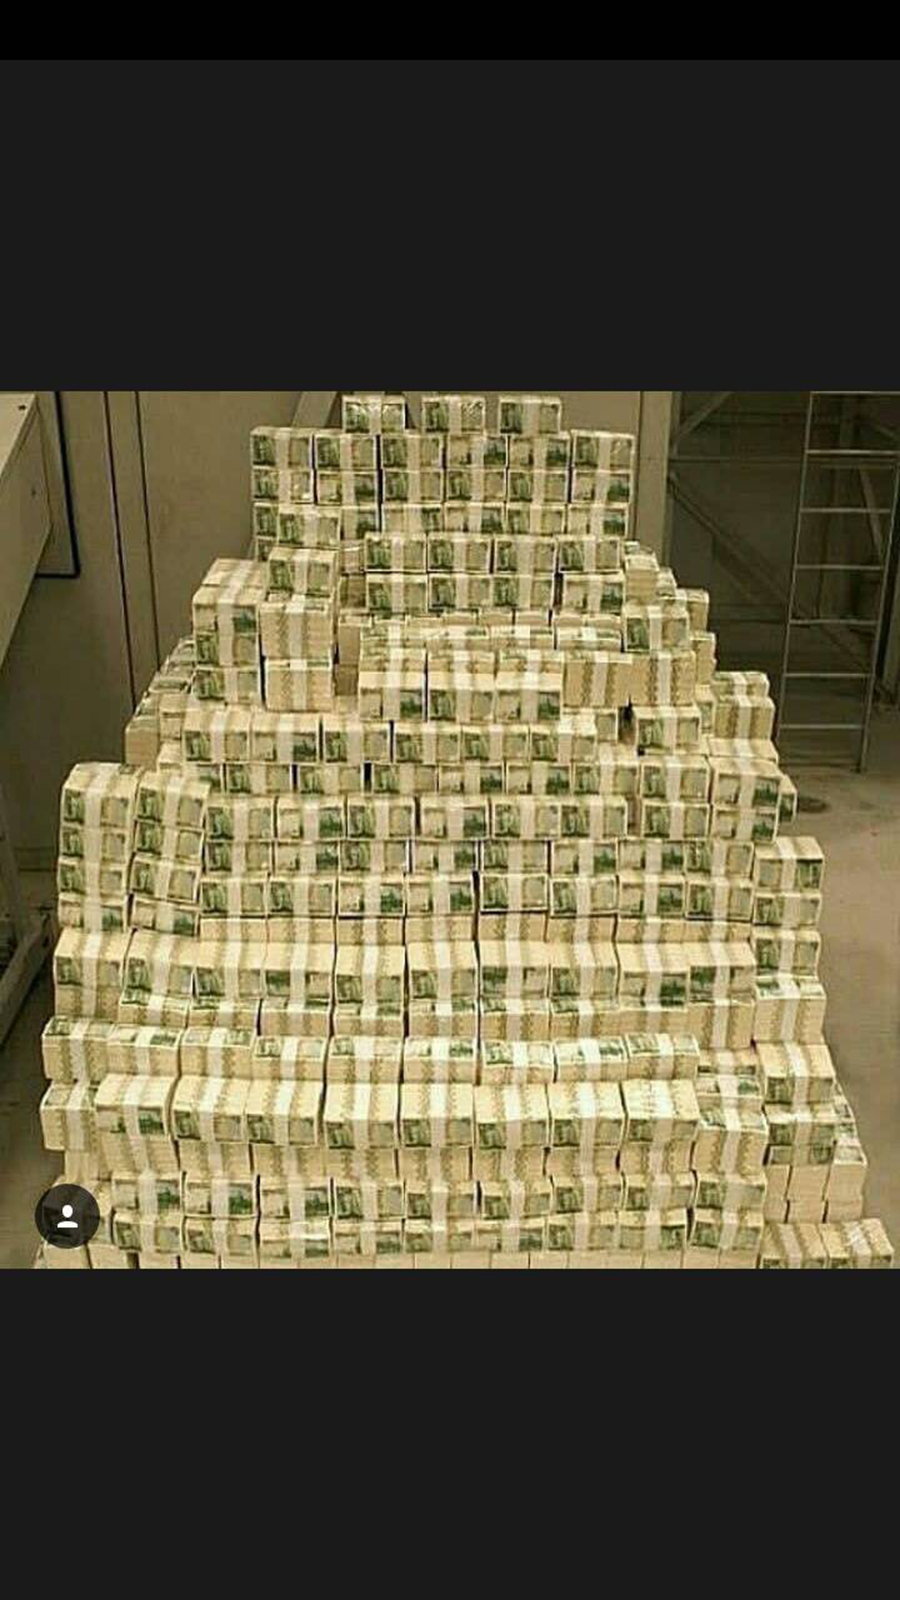 Billion Dollars Wallpapers Free Download For Your Device